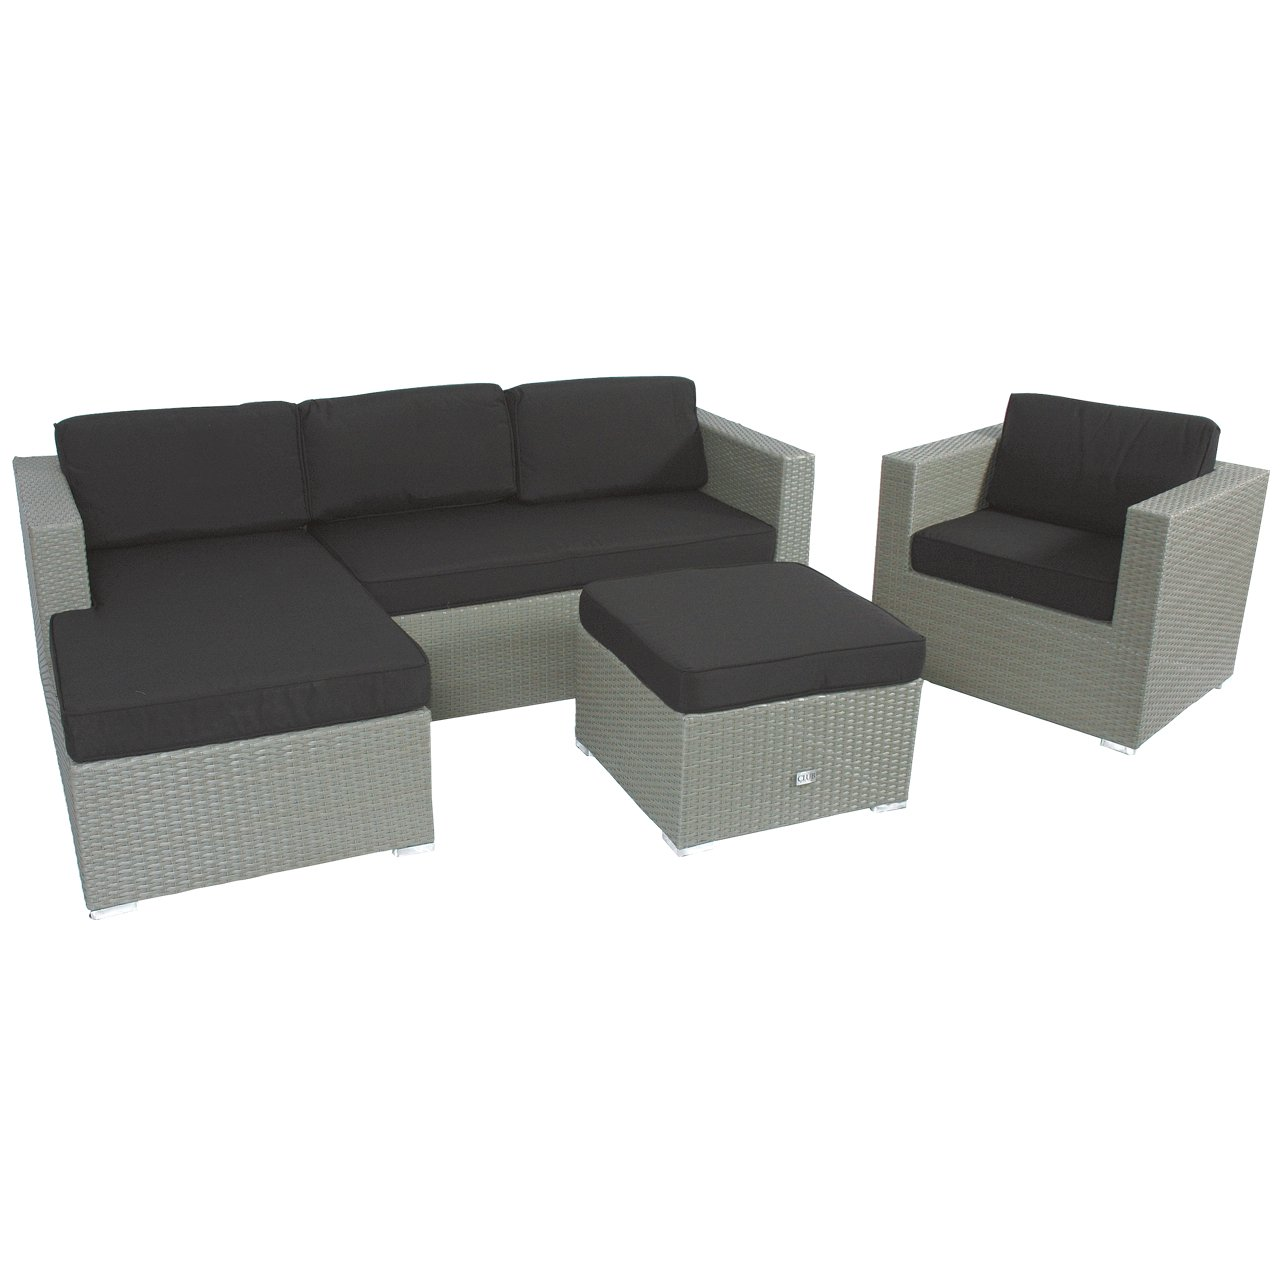 poly rattan ecklounge set 3tlg grau gartenm bel hocker stuhl g nstig. Black Bedroom Furniture Sets. Home Design Ideas